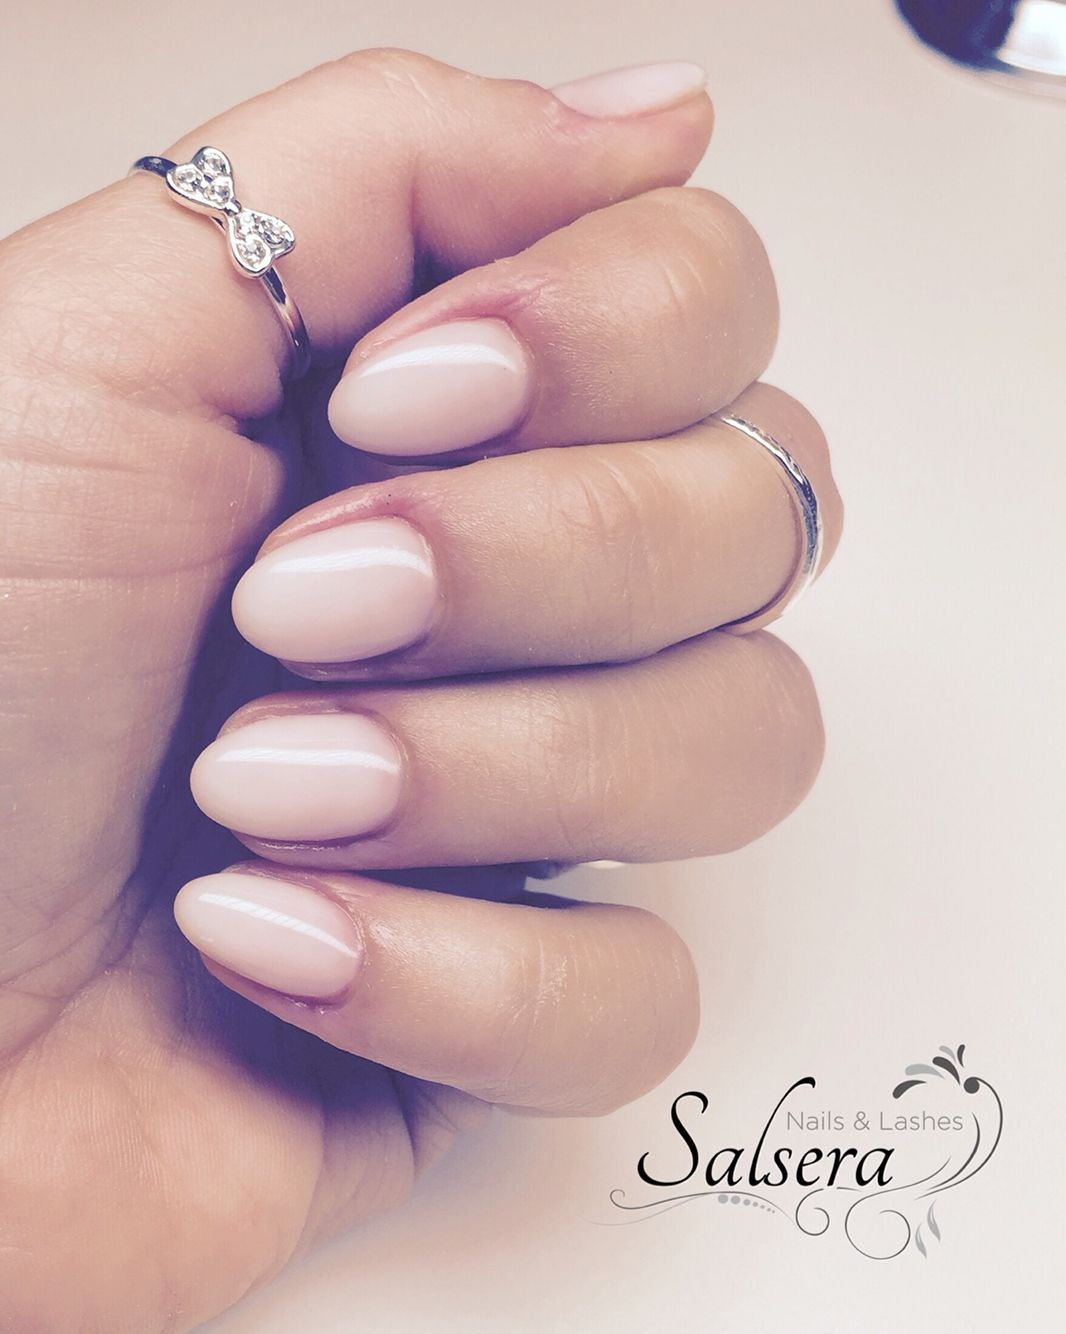 Weißes Nageldesign Nails Nägel Nageldesign Rund Kurz Schlicht Salsera Nails